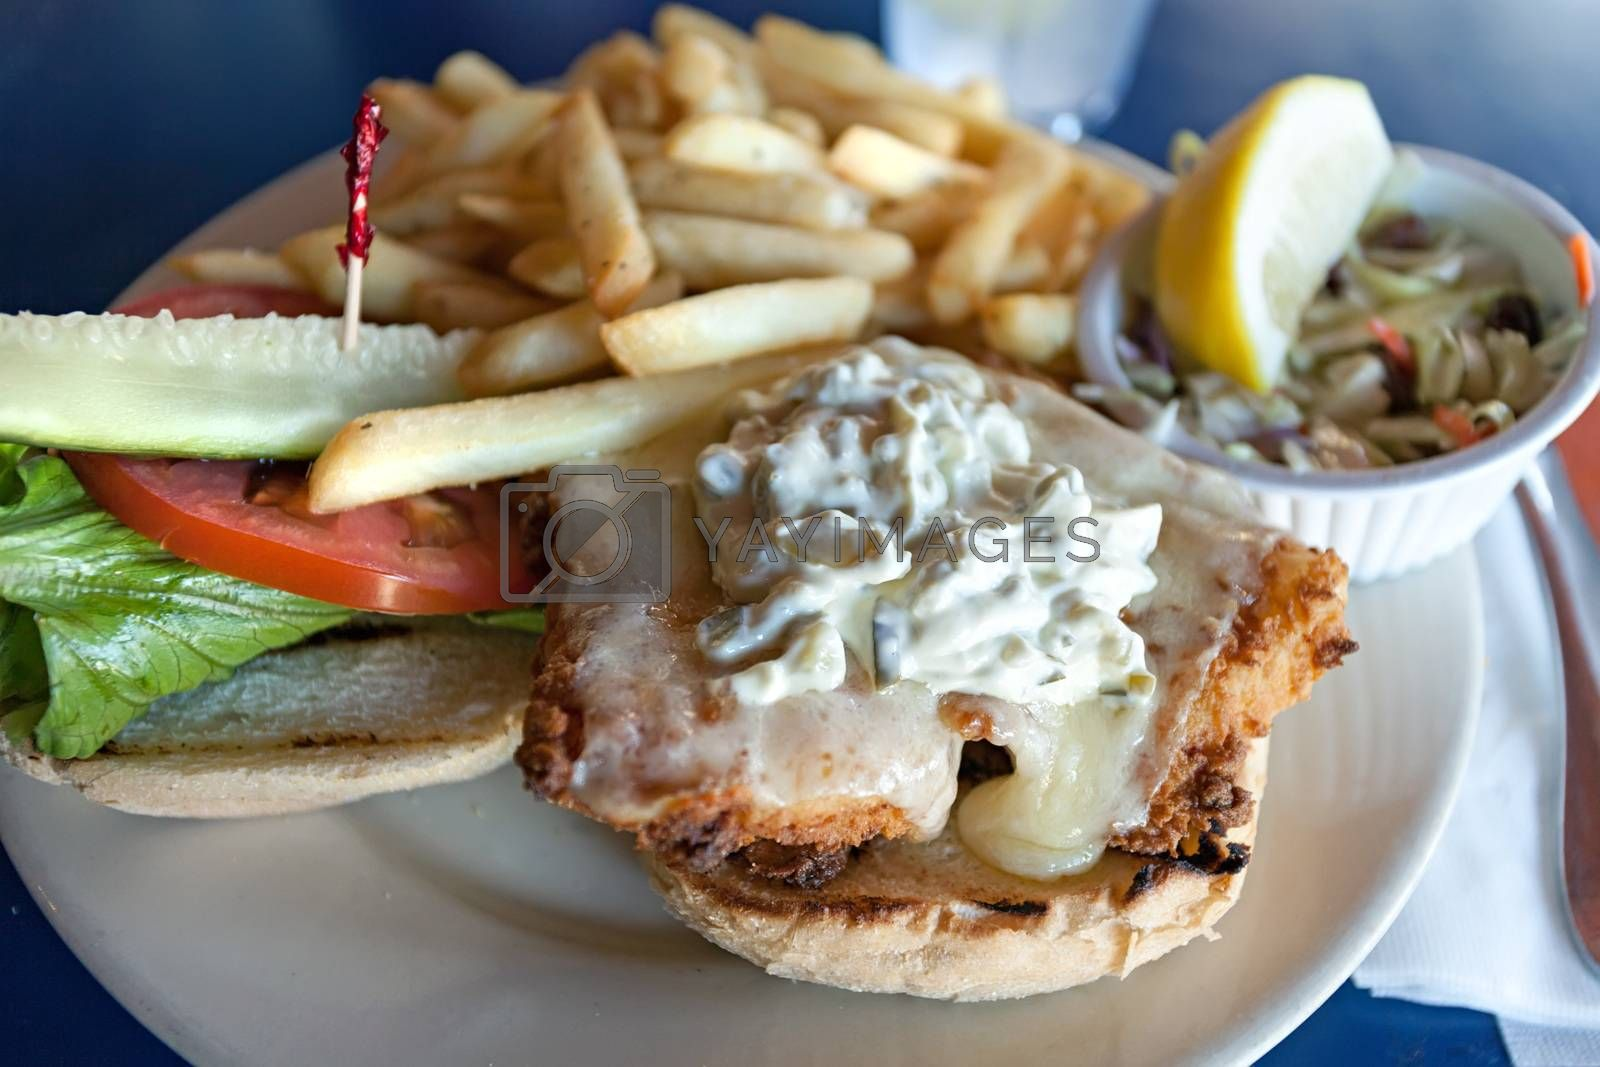 Fried fish sandwich with tartar sauce and french fries.